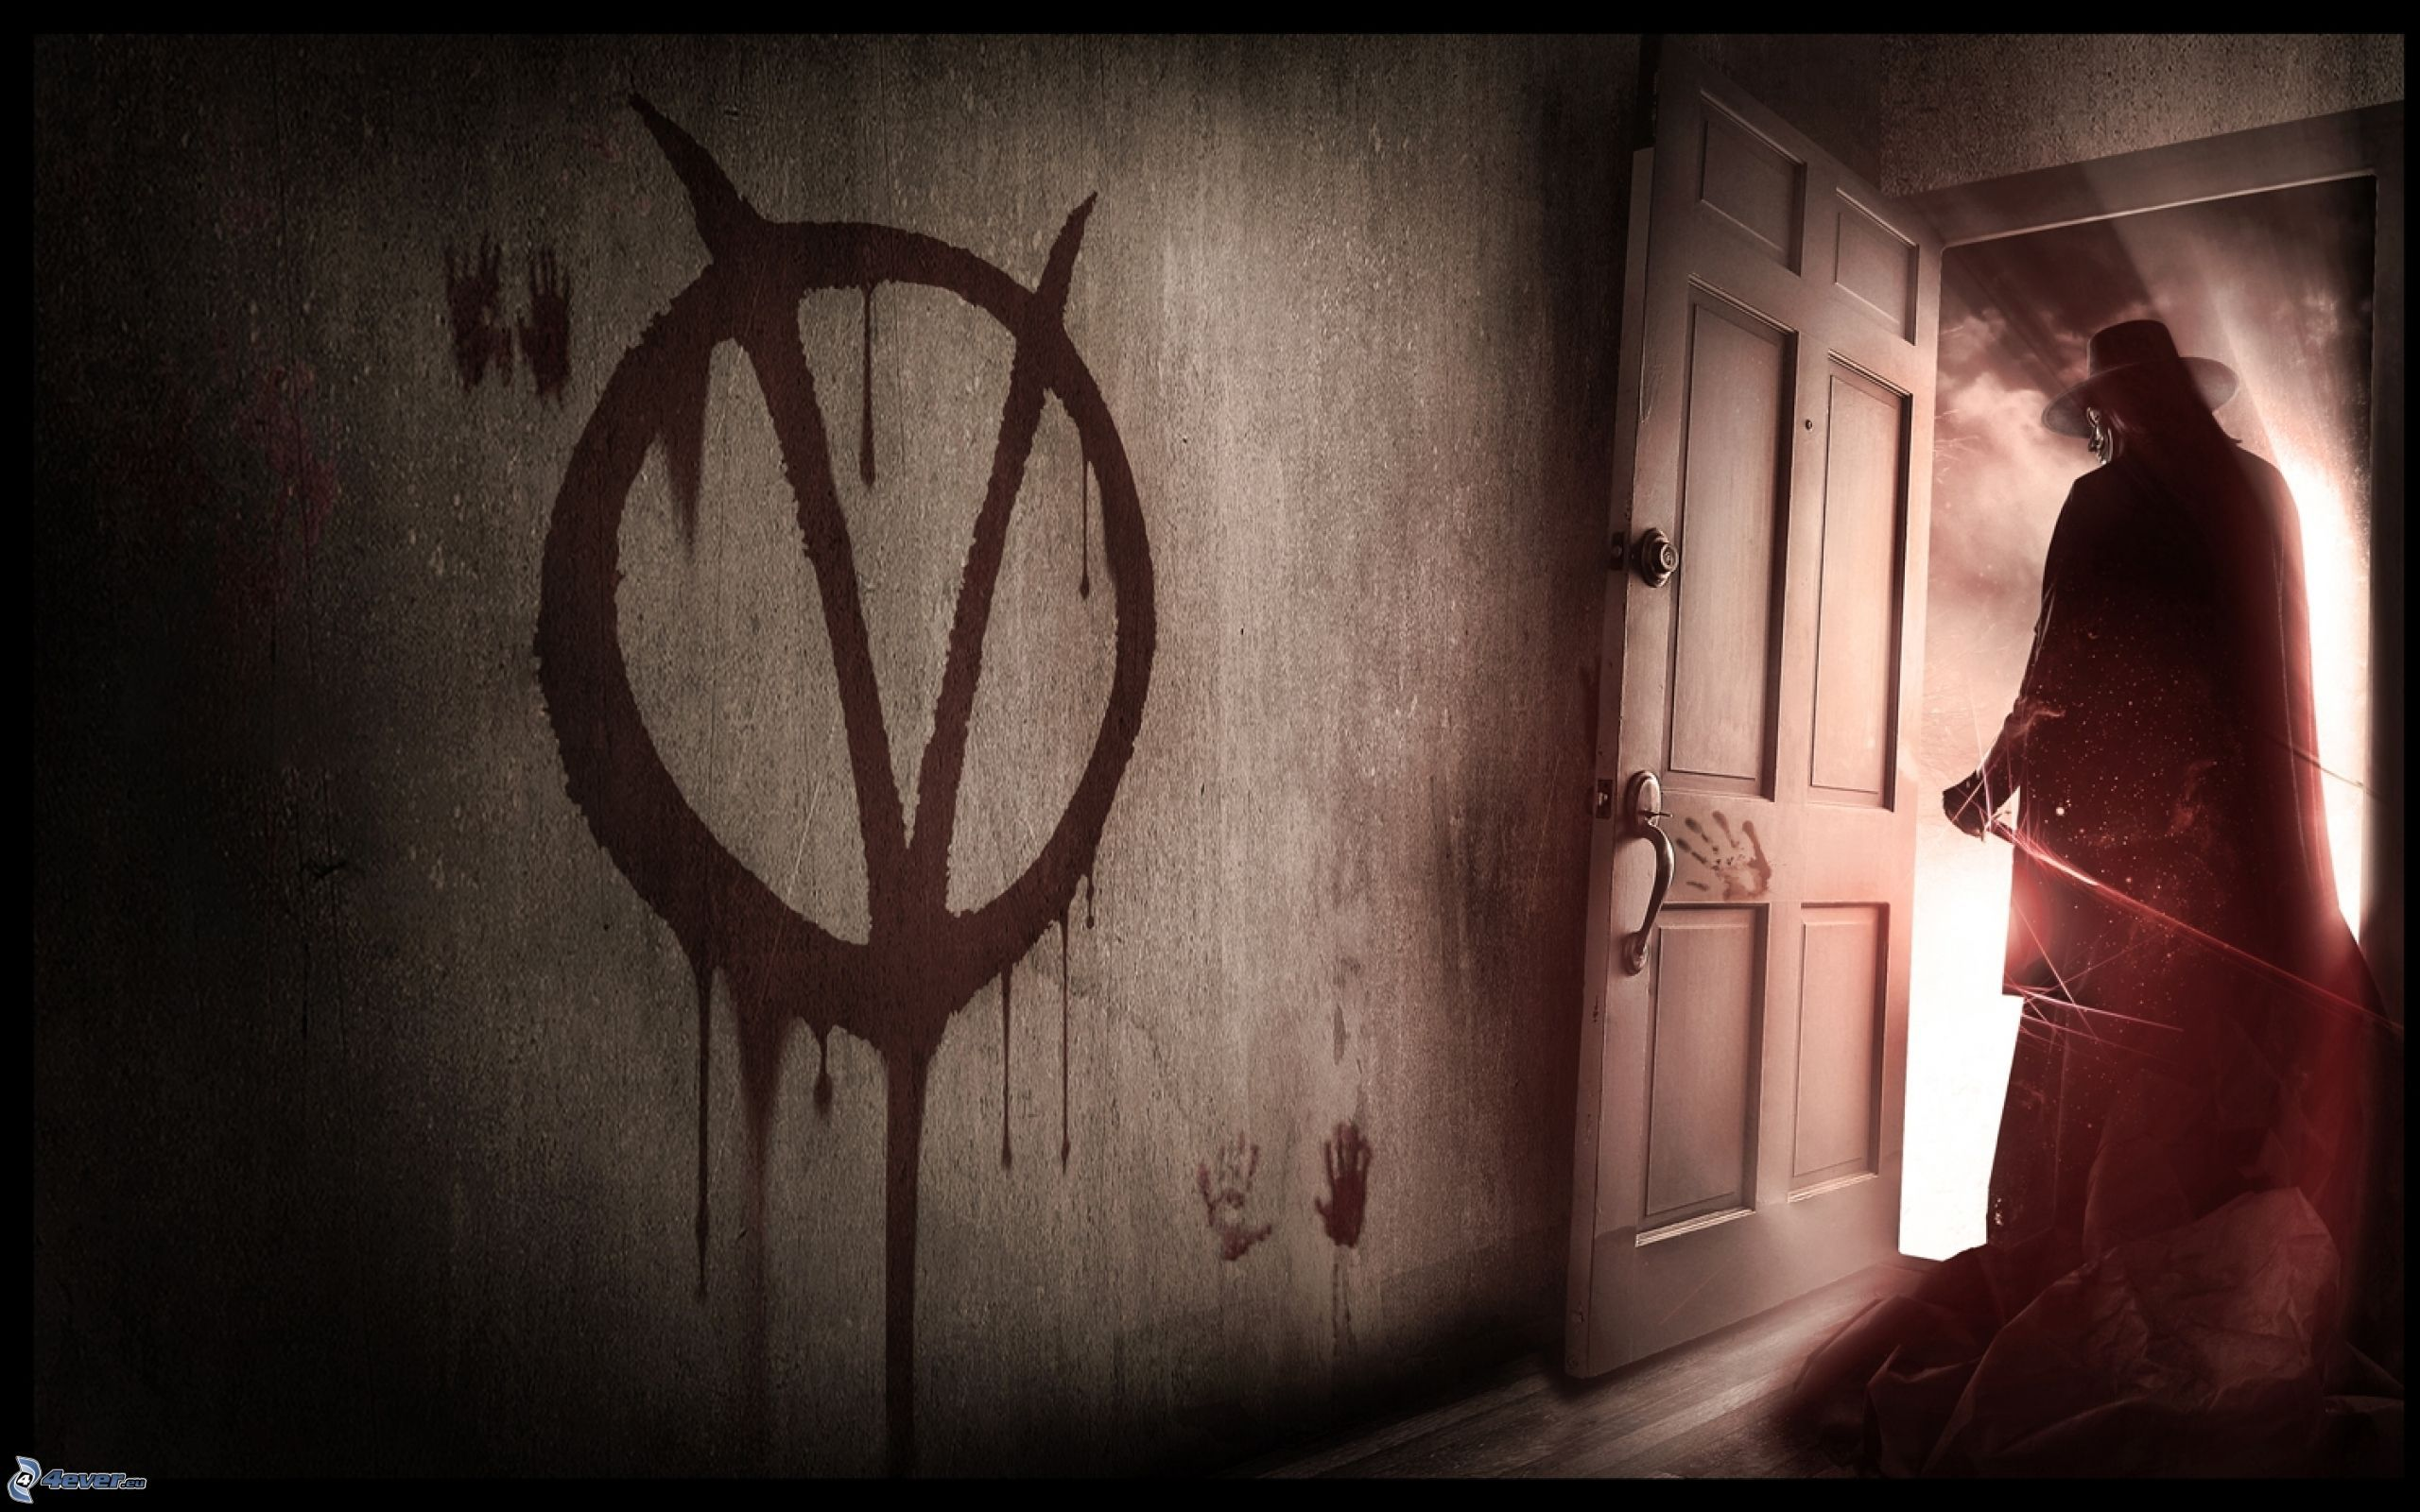 V for Vendetta Wallpapers Images Photos Pictures Backgrounds 2560x1600